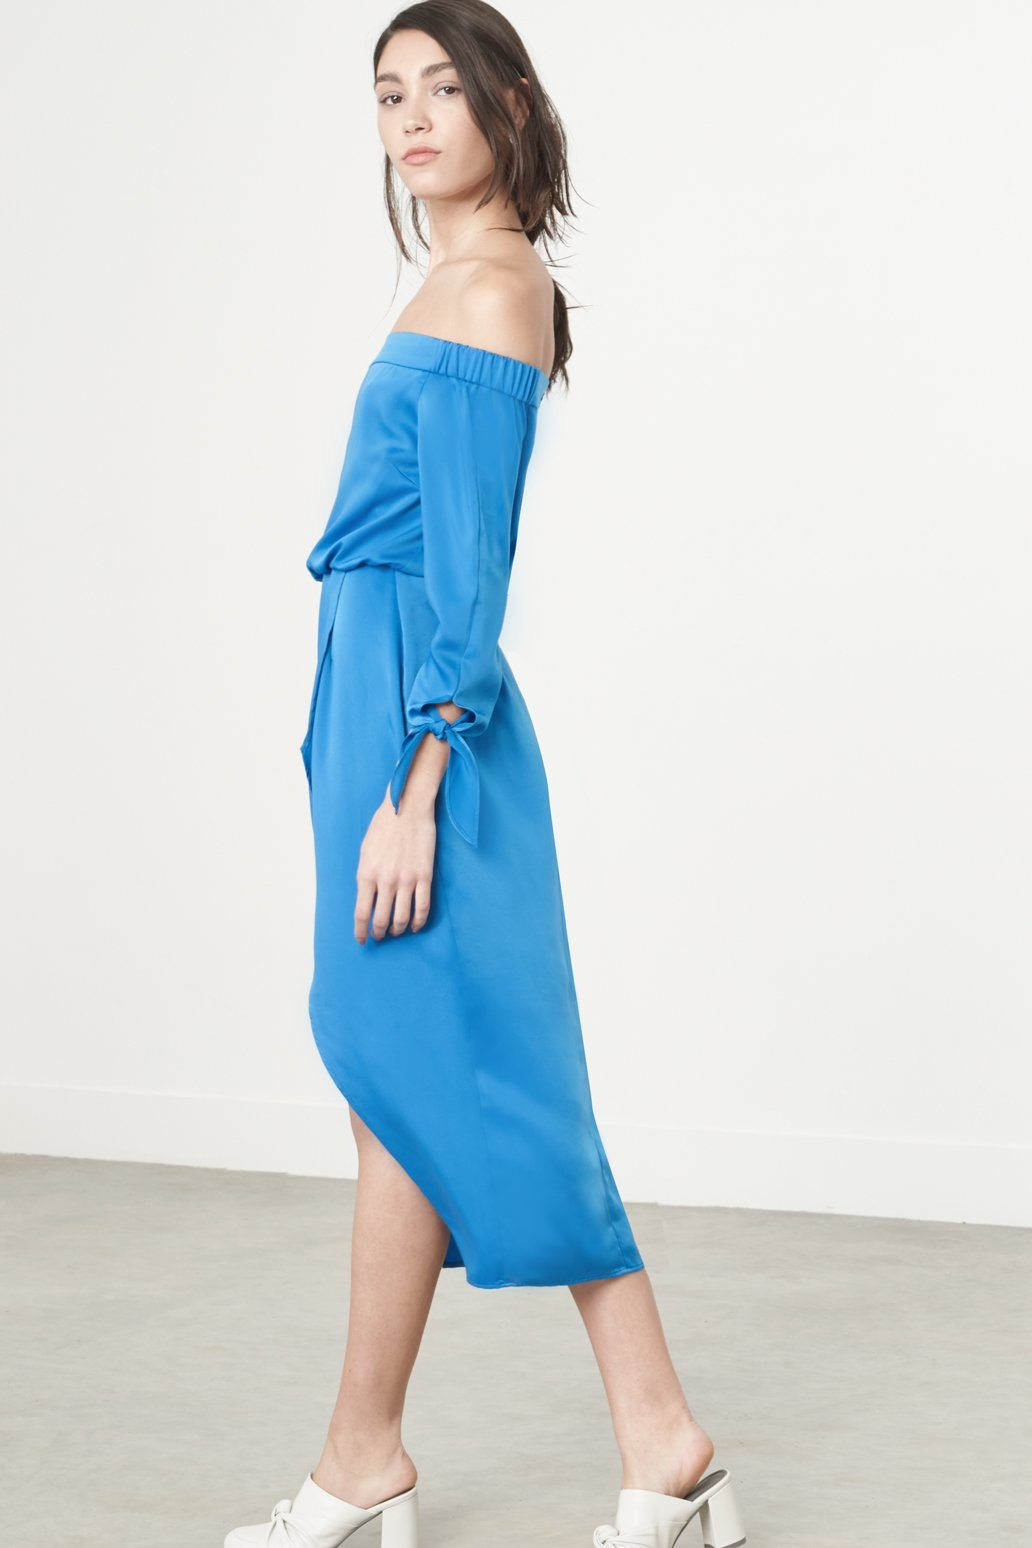 Tie Cuff Bardot Dress in Cerulean Blue Satin